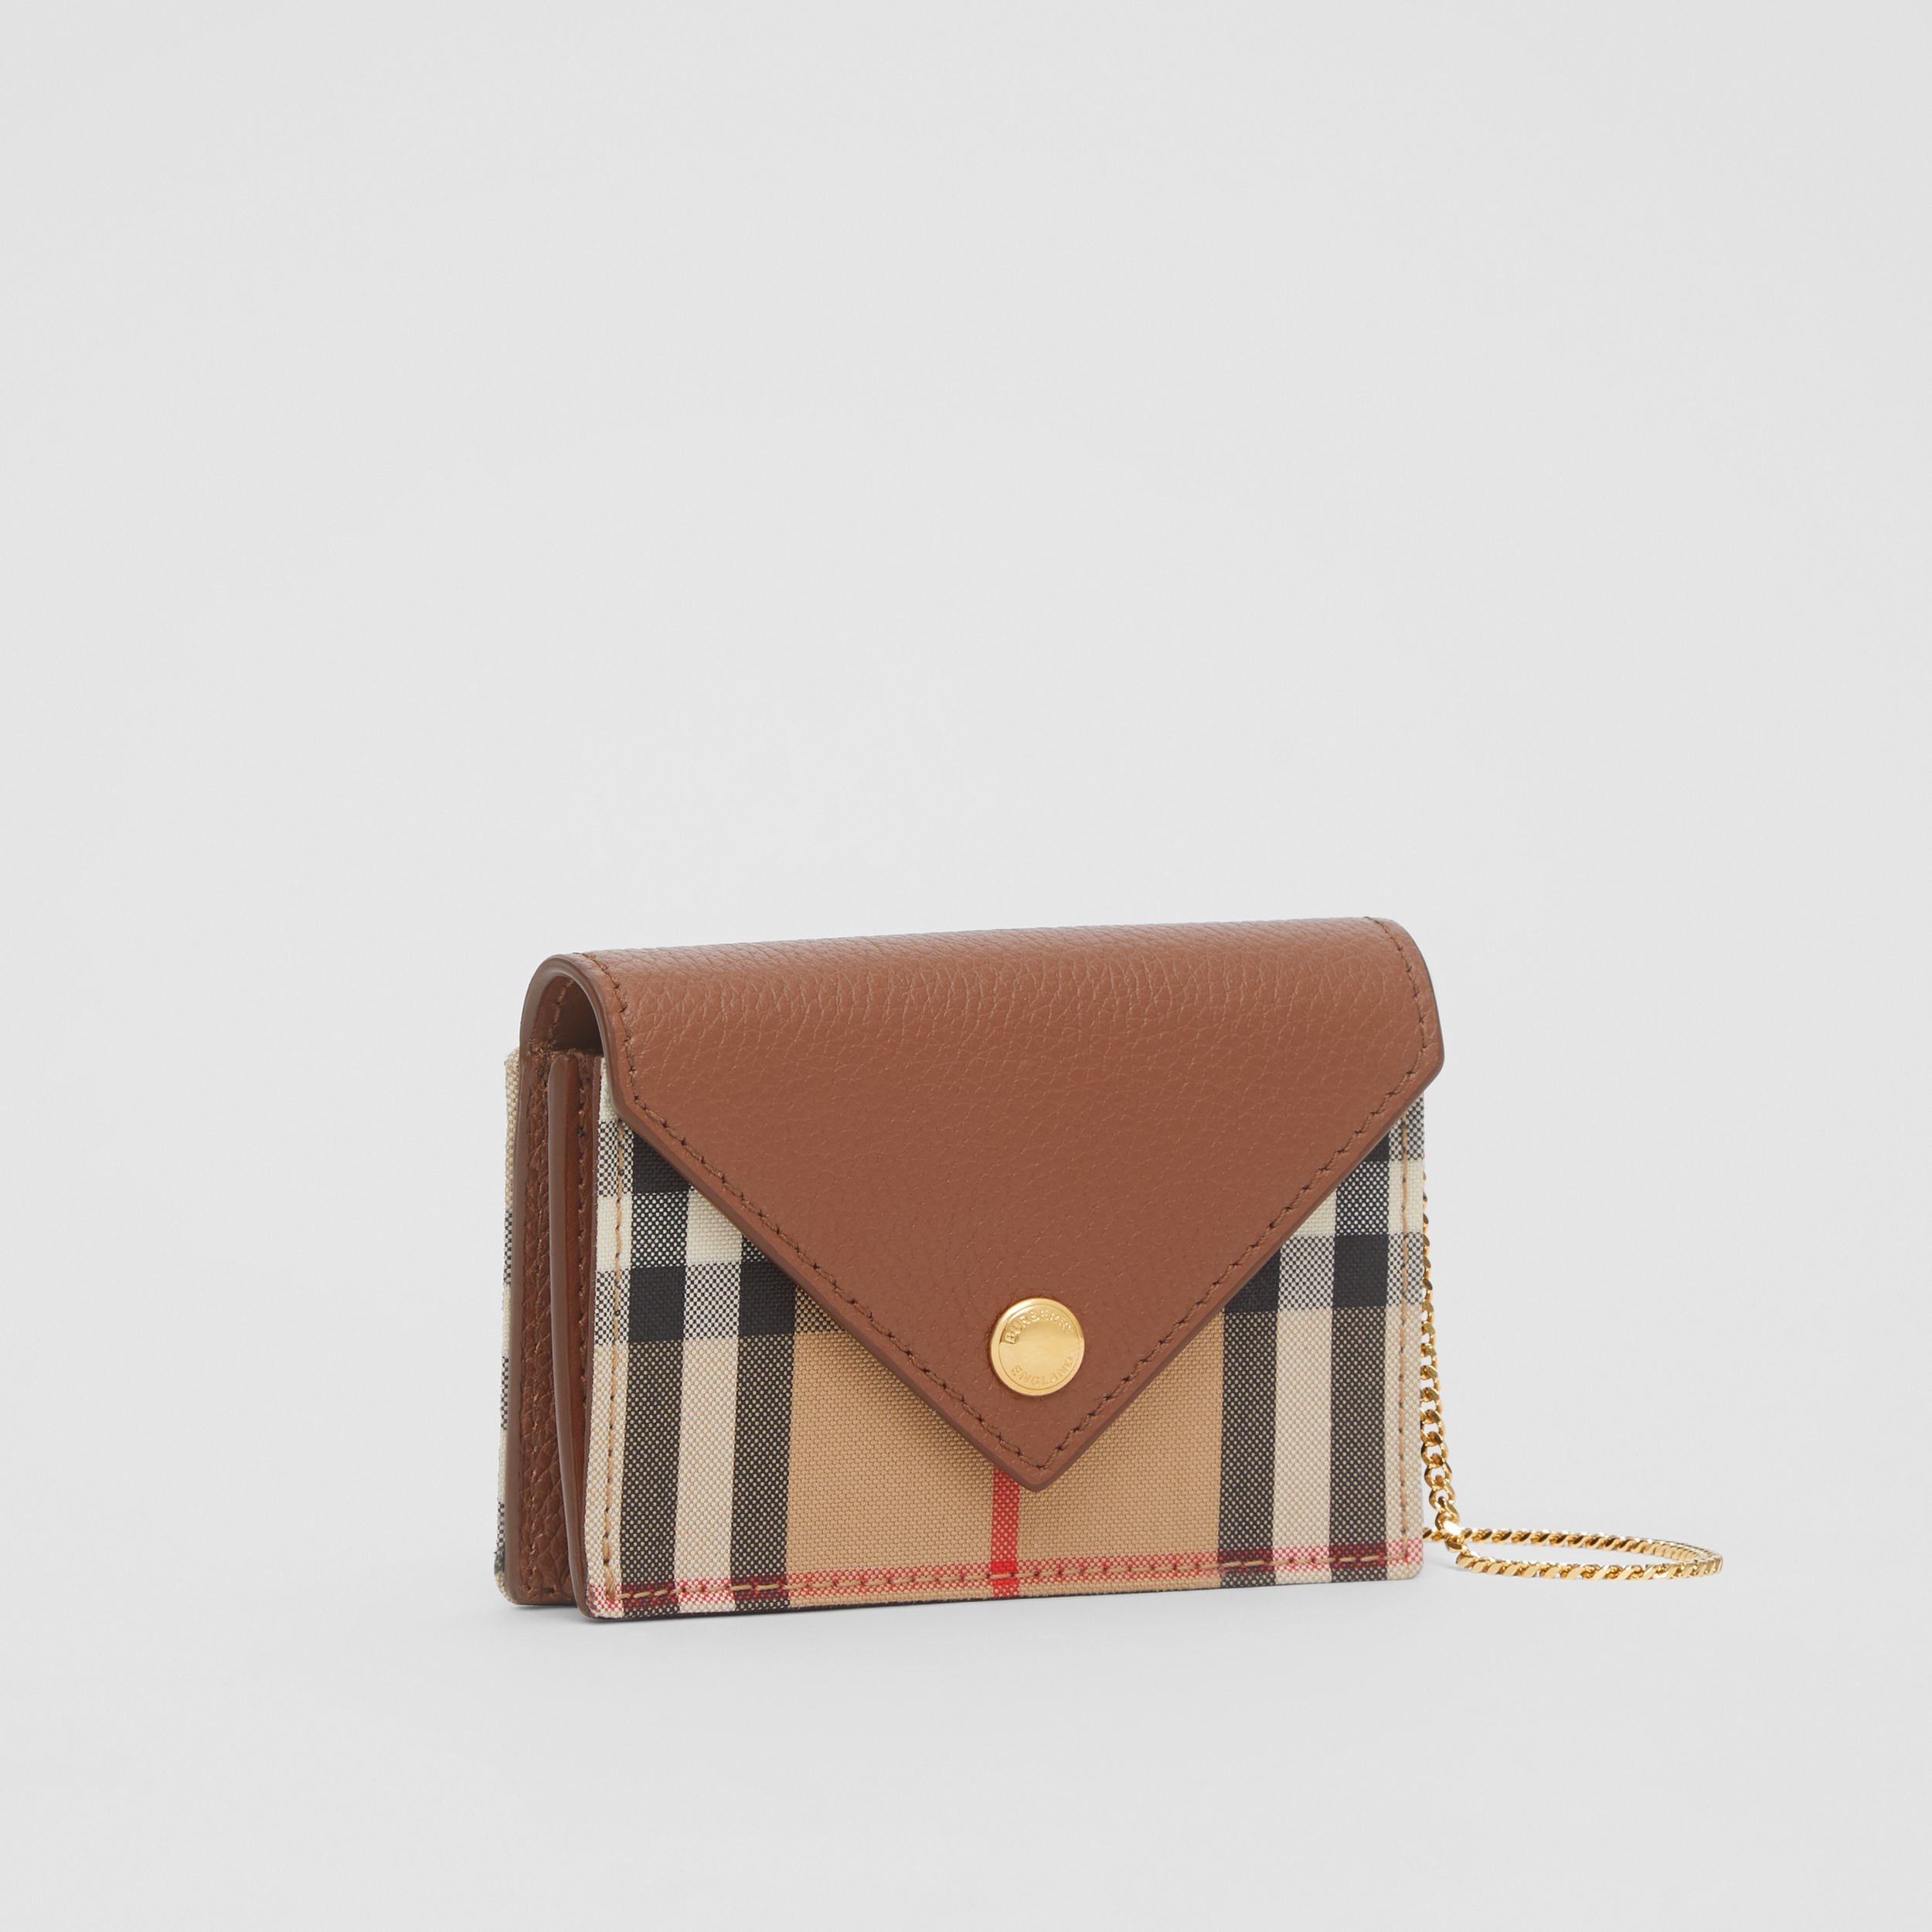 Vintage Check and Leather Card Case with Strap in Tan - Women | Burberry United Kingdom - 3